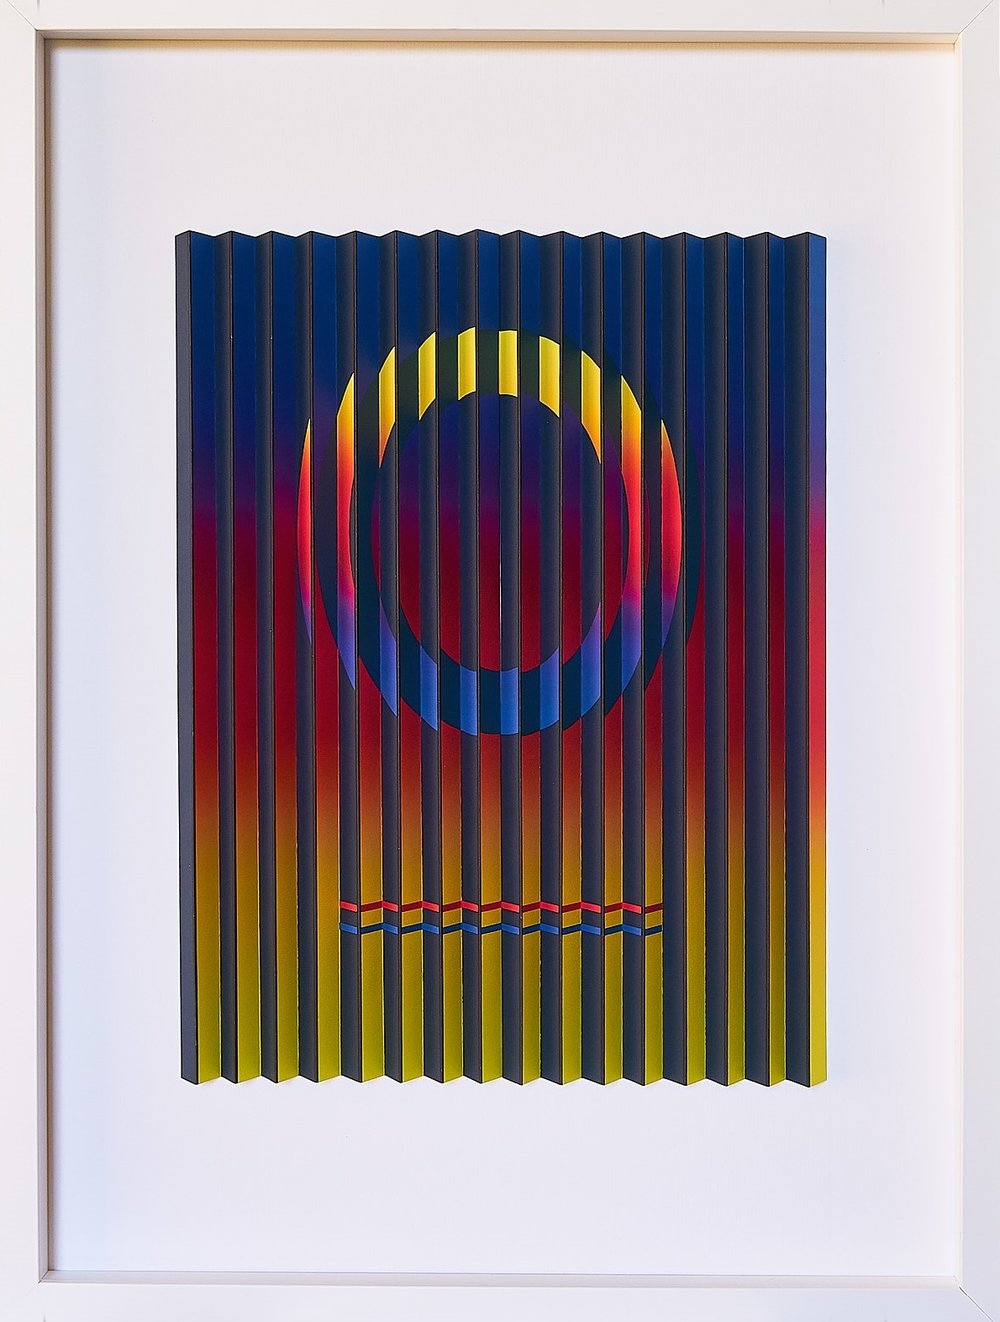 Rainbow Circle  Mark Cowden, limited edition multiplane, #8/10, 490mm x 640mm inc. frame  sold